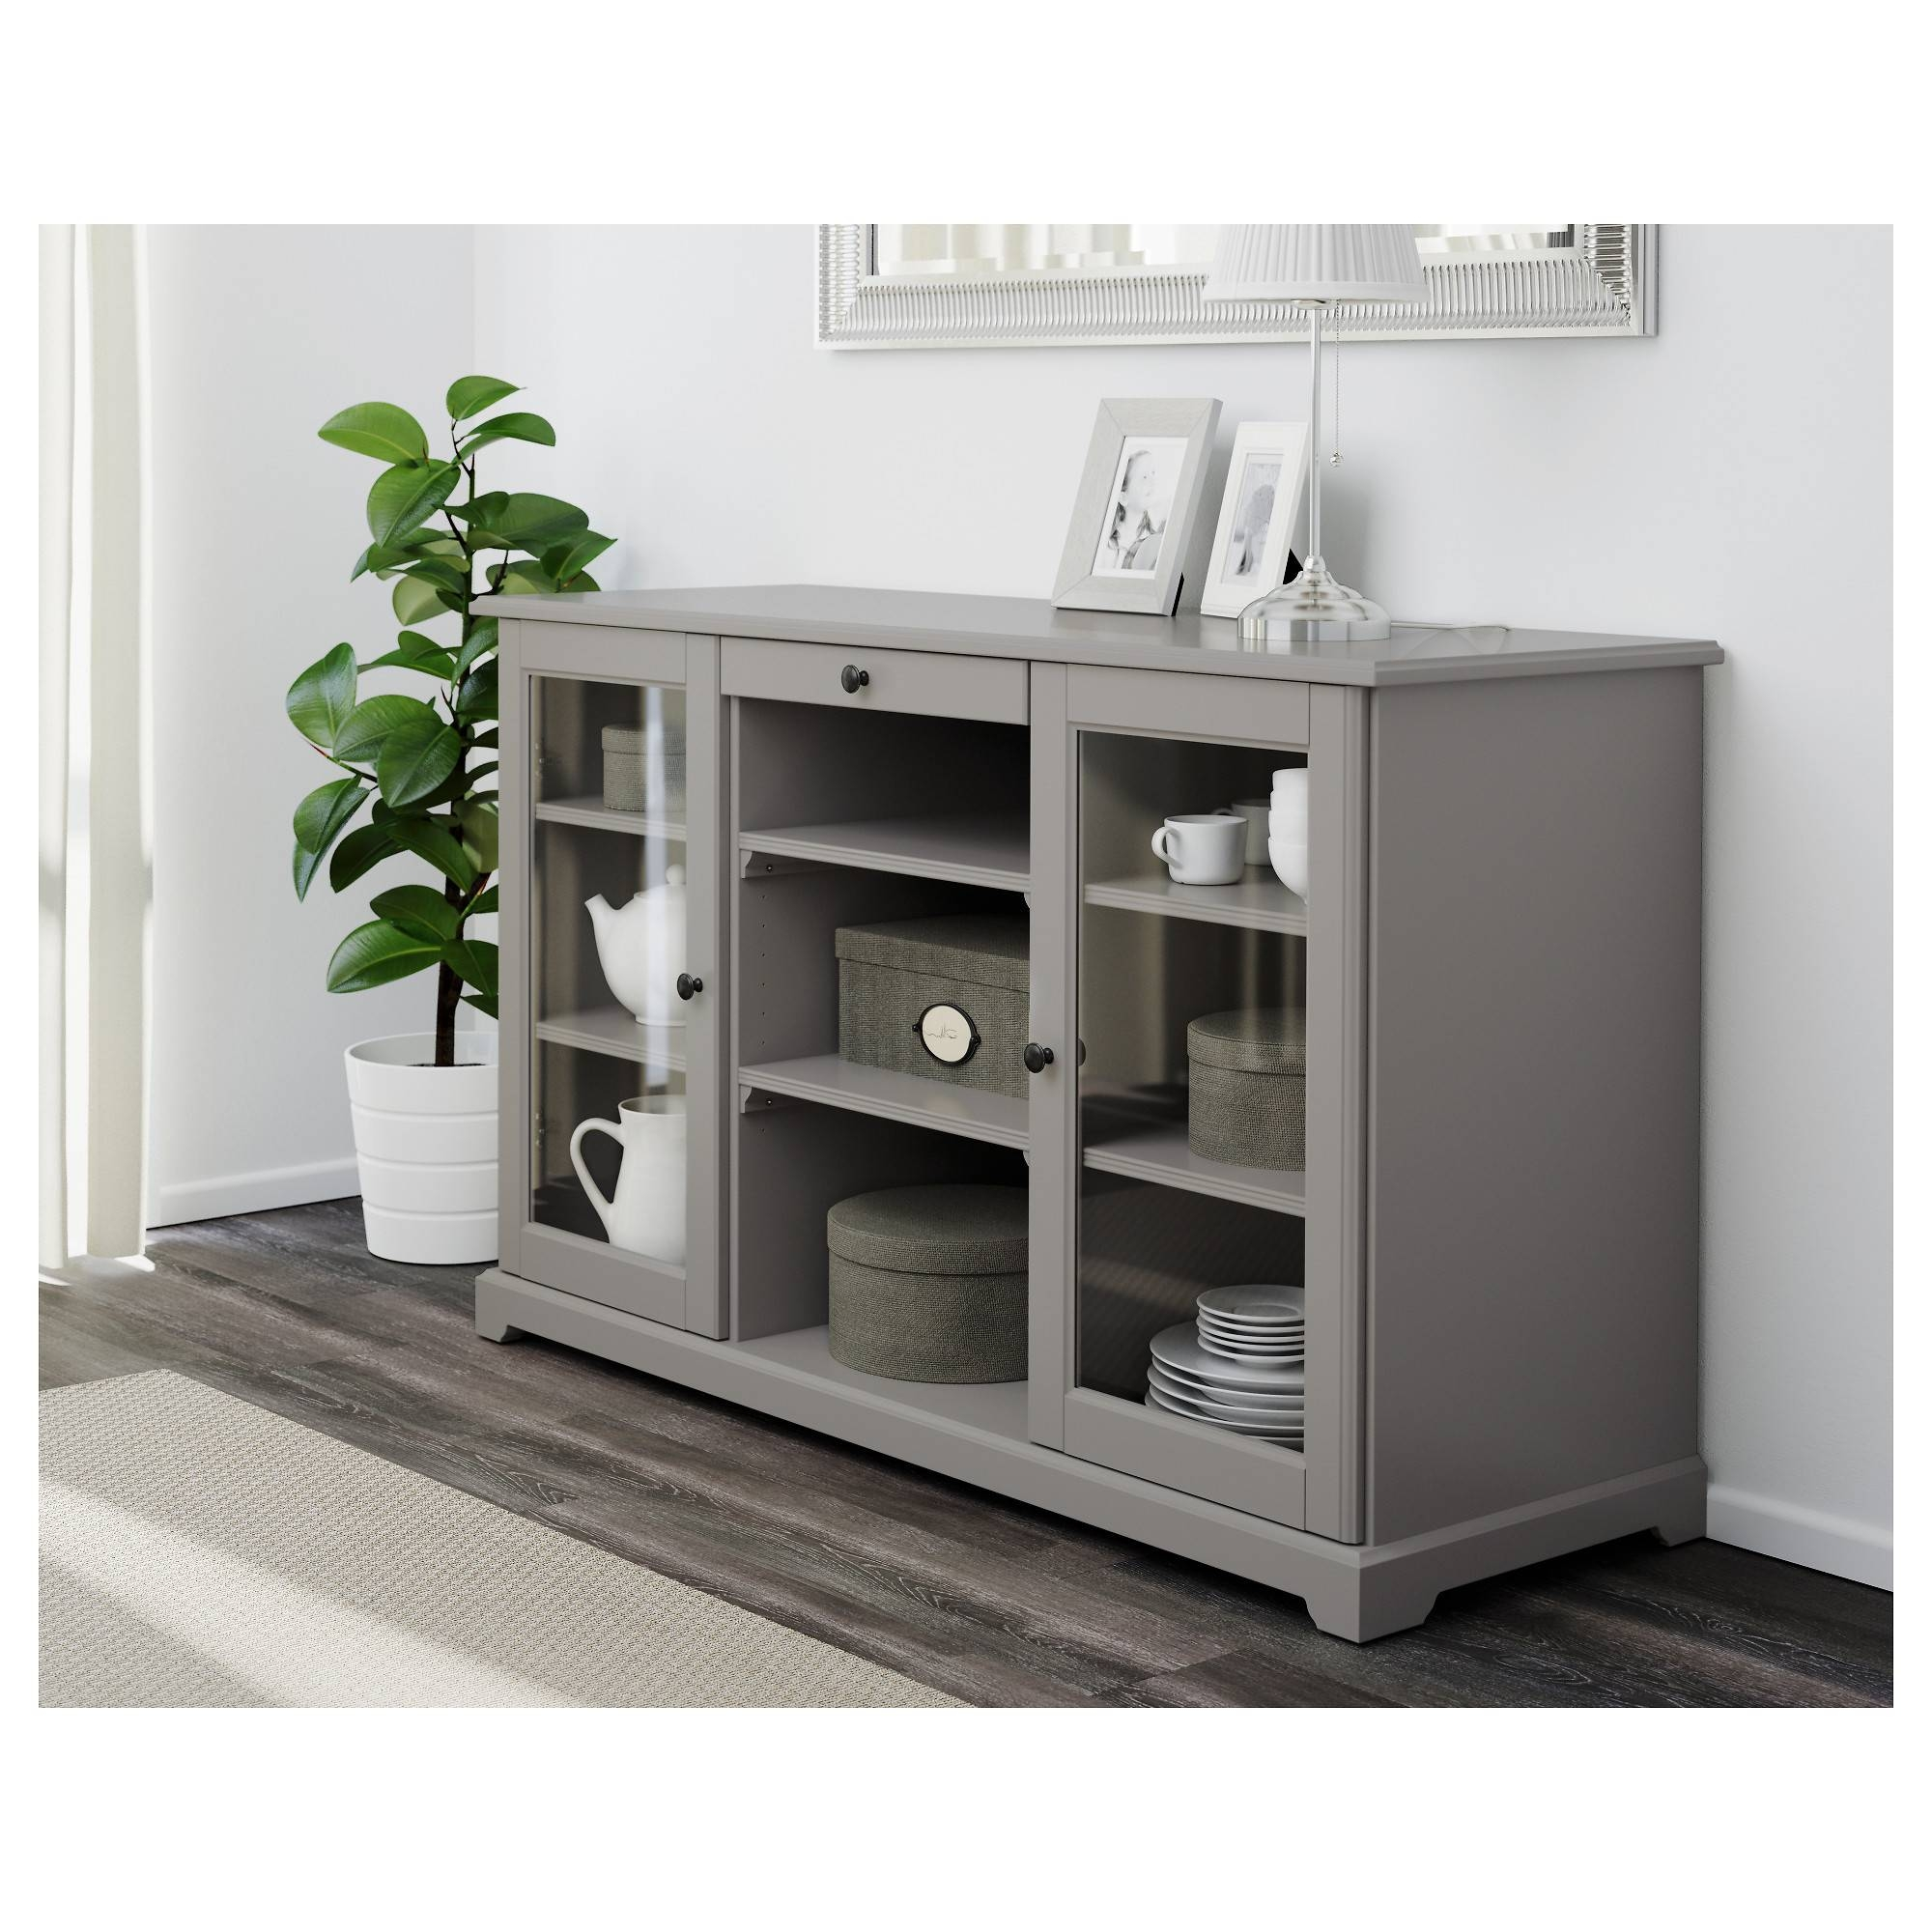 Liatorp Sideboard - White - Ikea with regard to Liatorp Sideboards (Image 12 of 15)